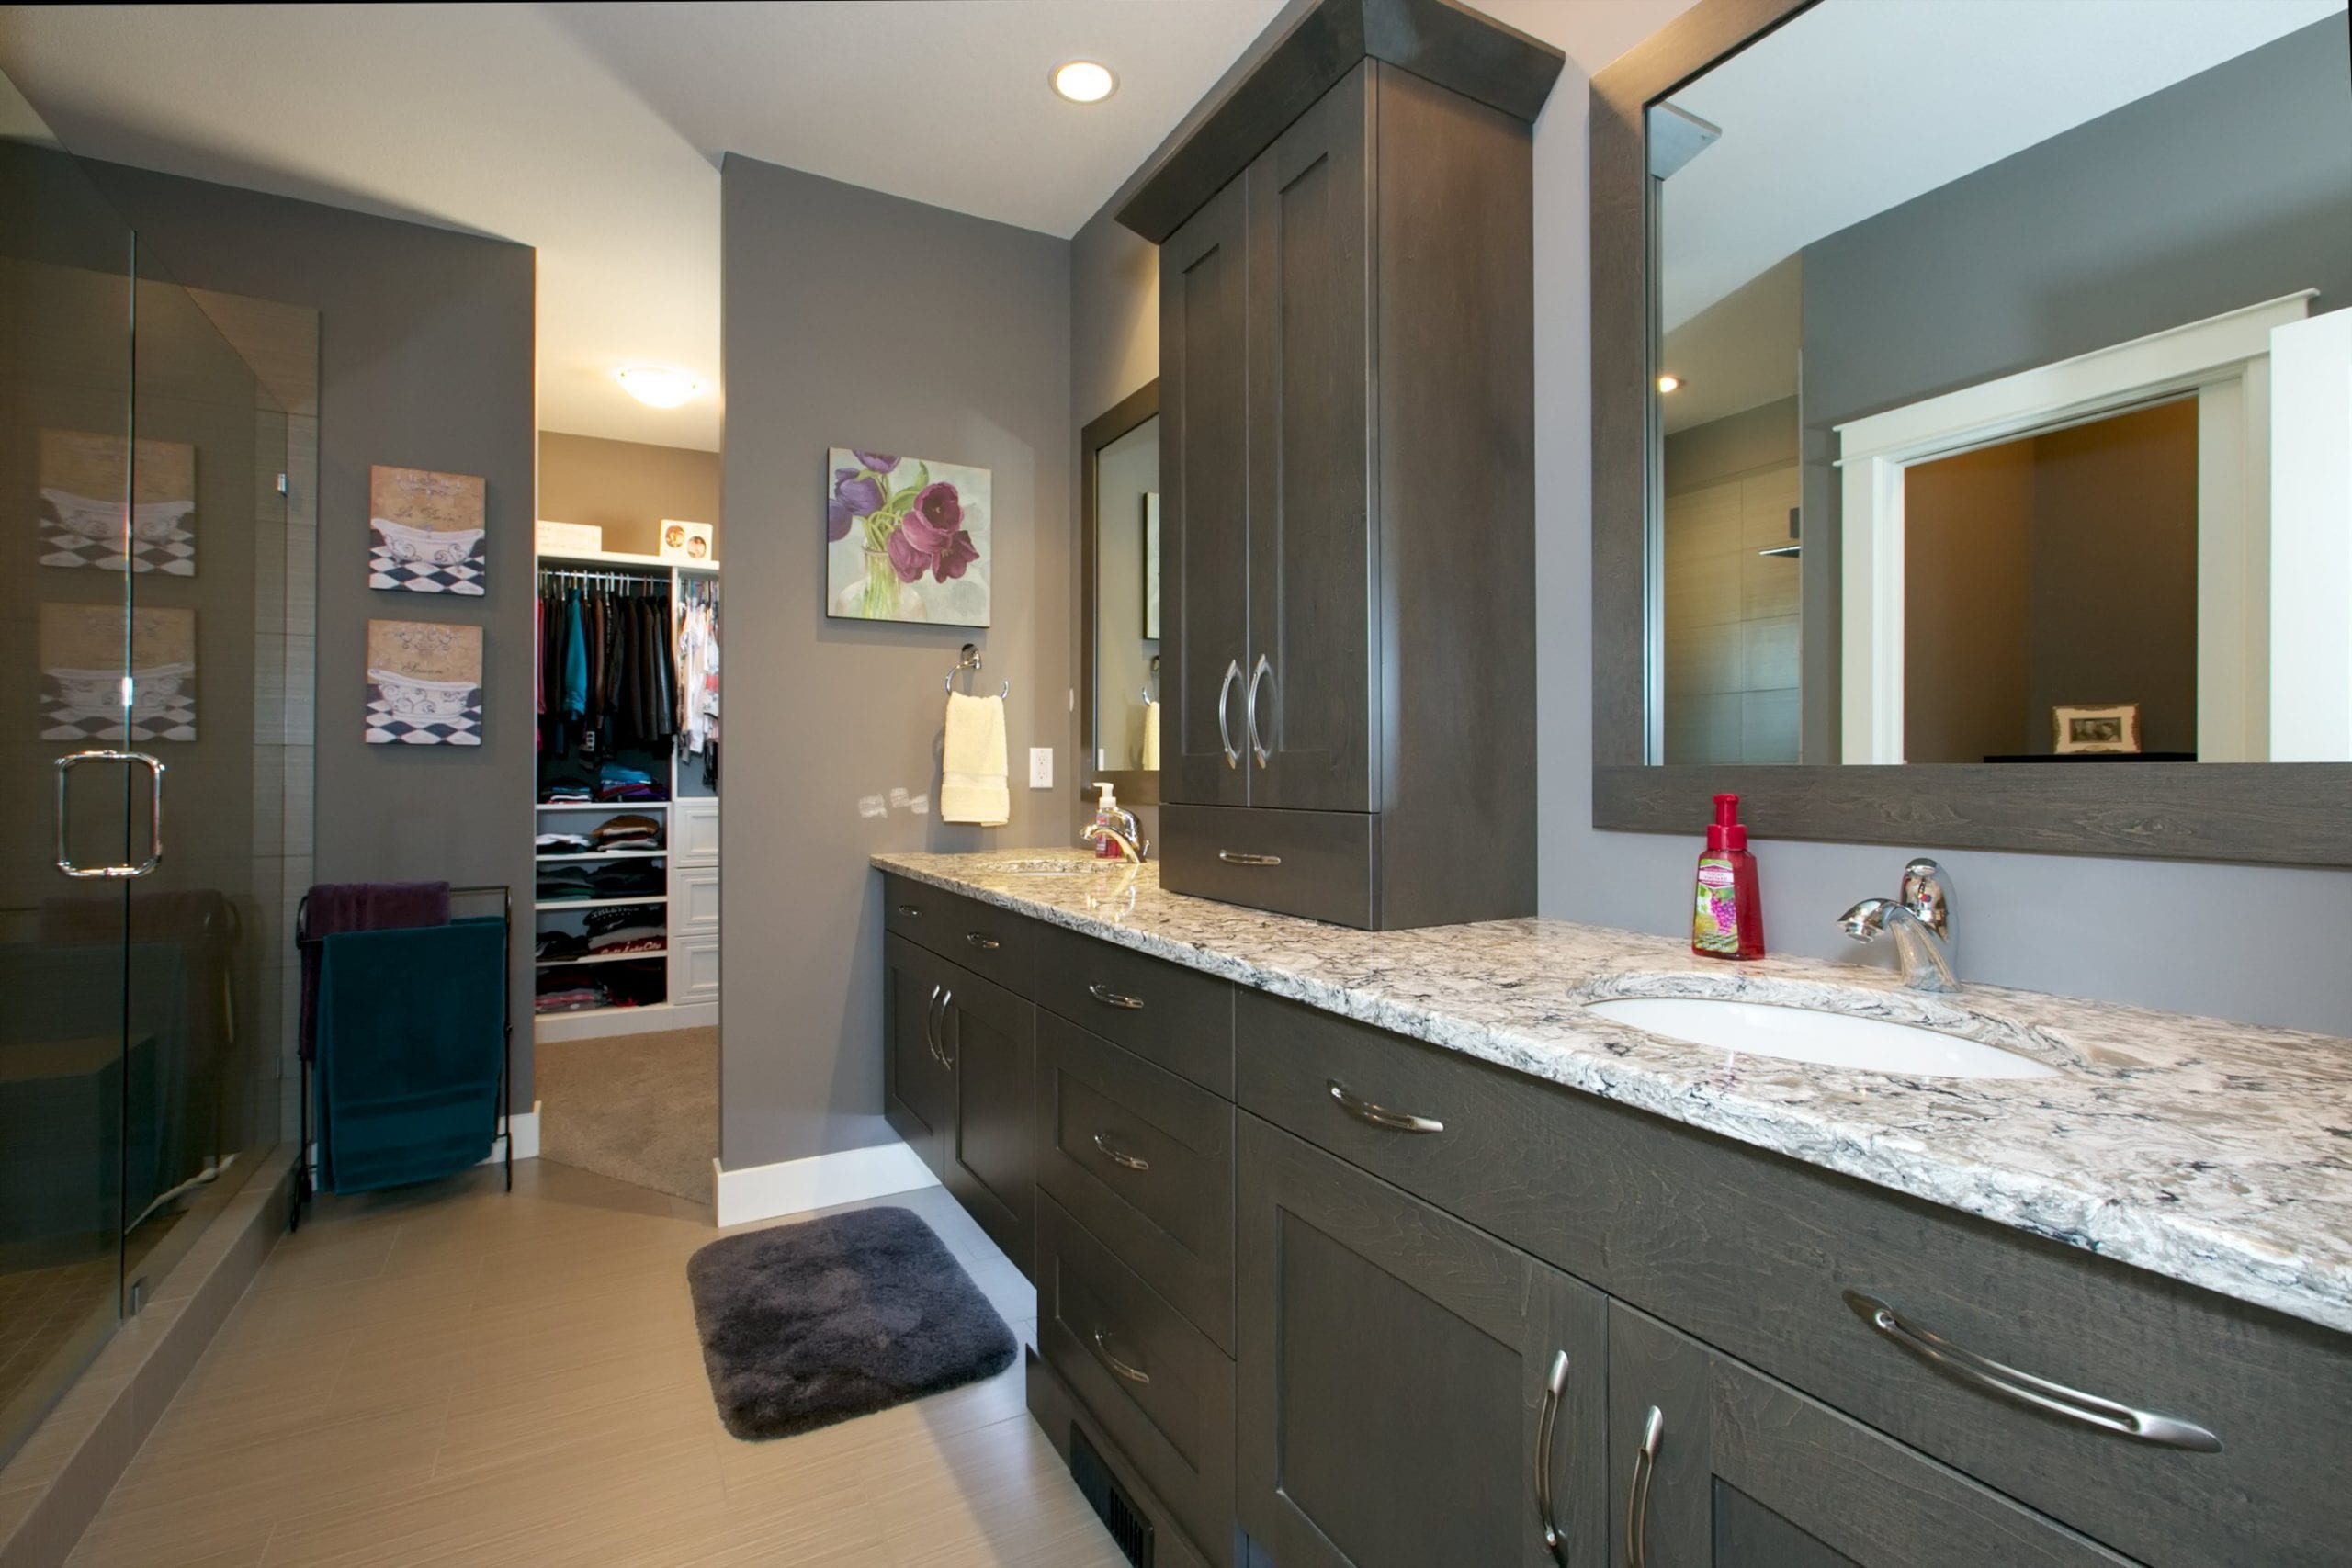 interior shot of westharbour home master bathroom with a his and hers sink assorted cabinetry and a walk in closet